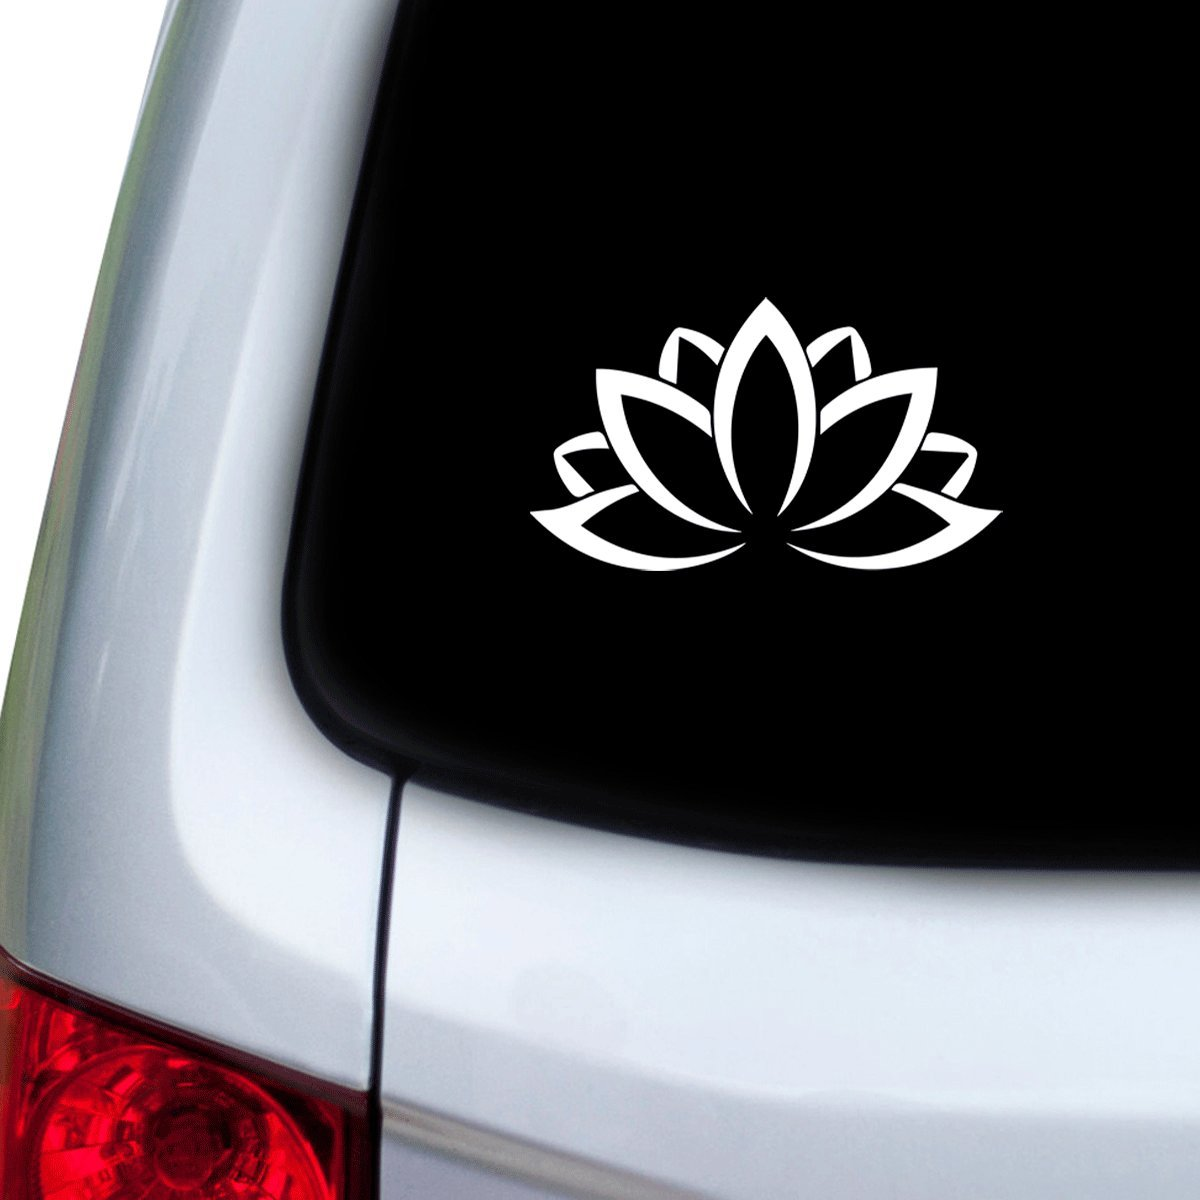 Hoods Red Doors StickAny Car and Auto Decal Series Opening Flower Sticker for Windows